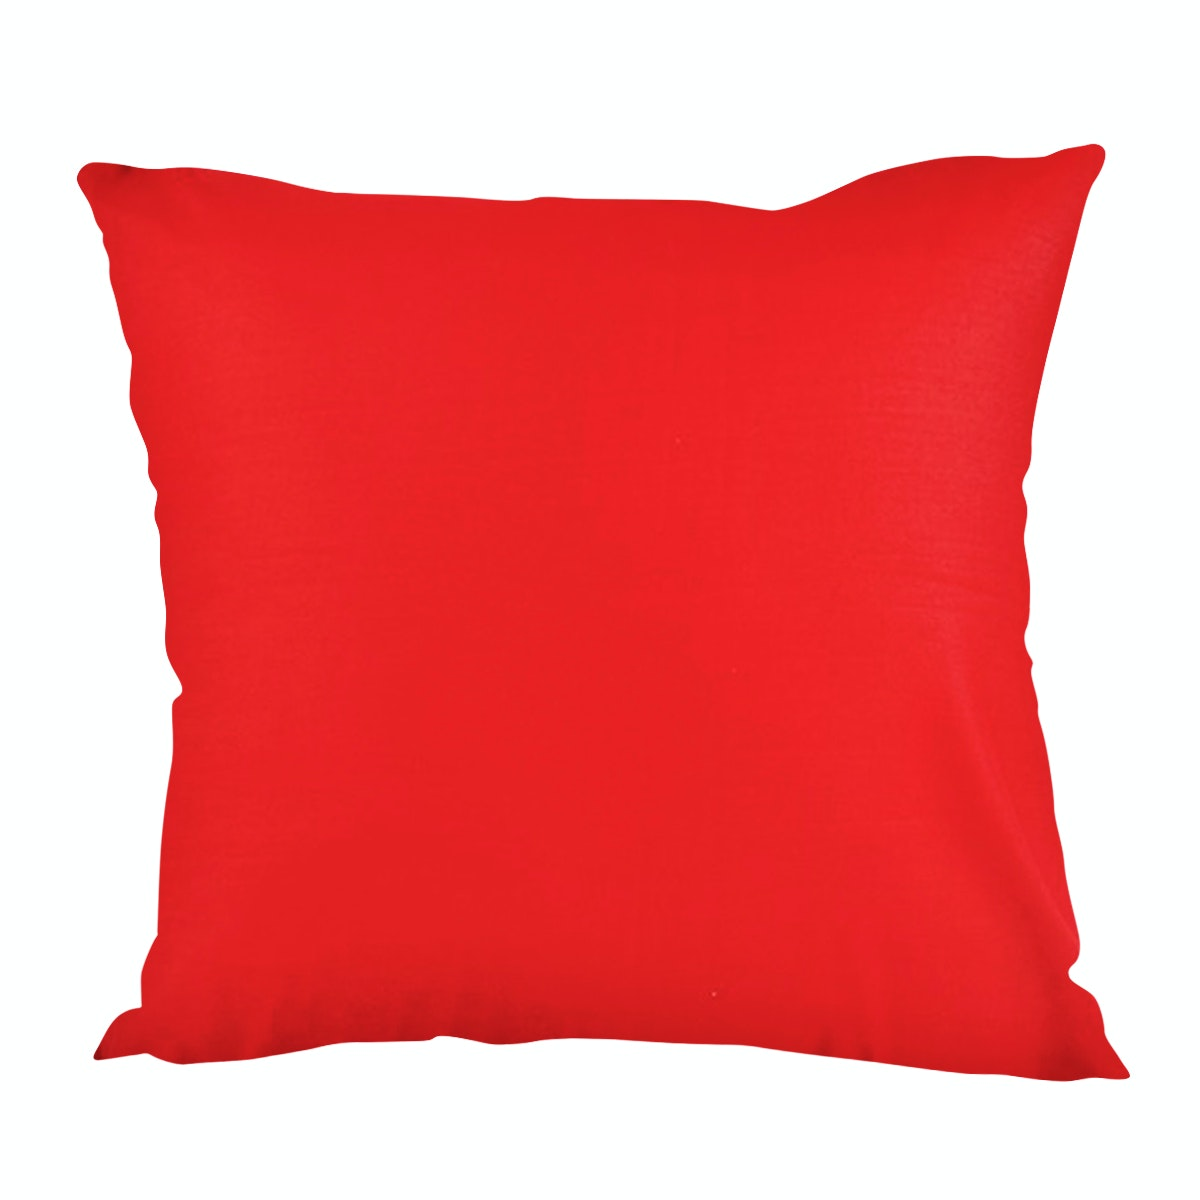 Glerry Home Decor Bright Red Cushion 40x40cm